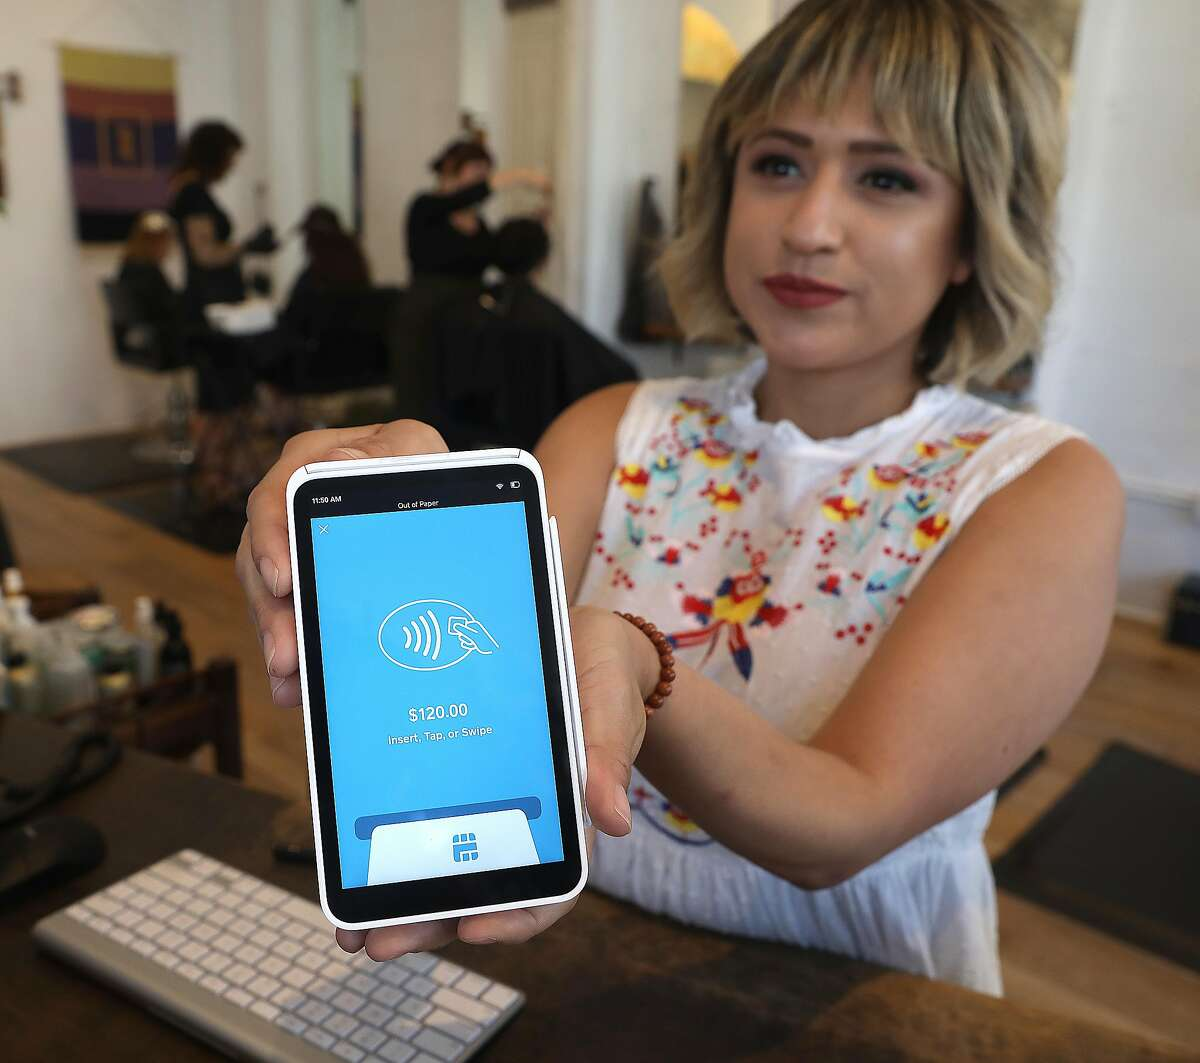 Manager Kat Berumen uses the new Square portable tablet at Edo salon on Wednesday, Oct. 17, 2018 in San Francisco, Calif. Square on Thursday will be announcing their new hardware--a portable tablet register that can be brought to customers to pay for a service.